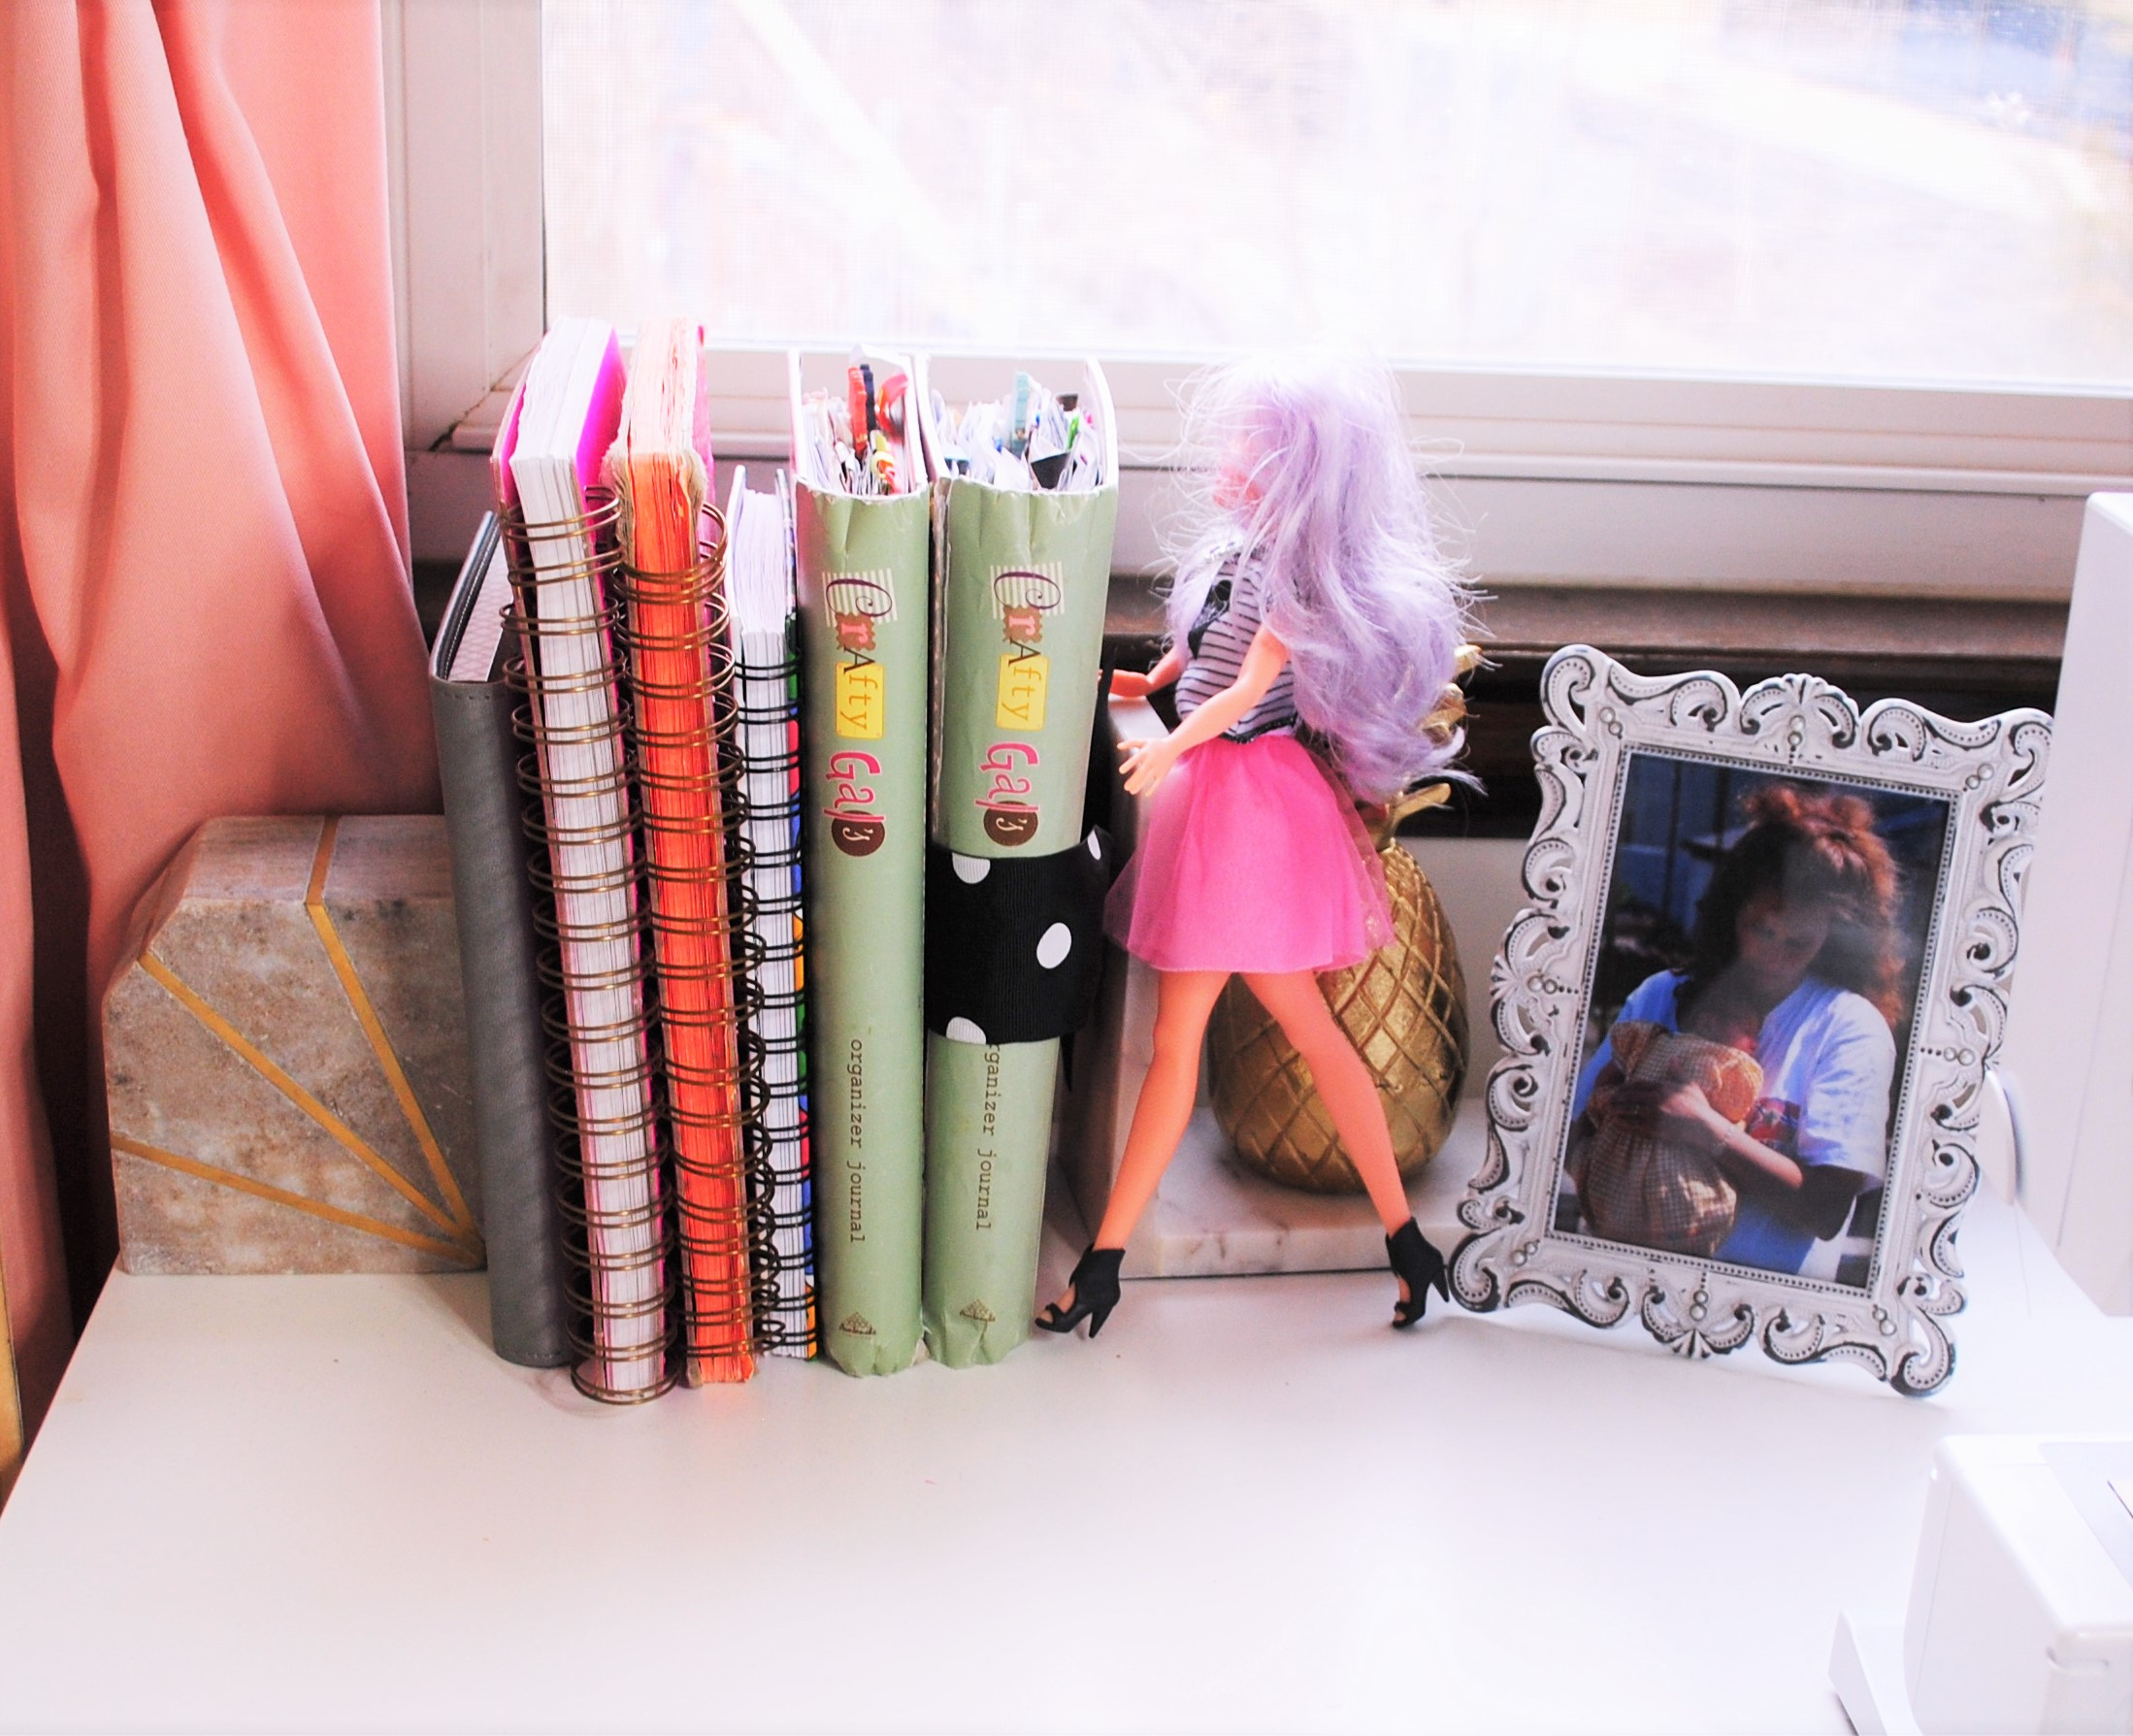 Just a few more details here- a photograph of me with my amazing mother, another fabulous Barbie doll, and a number of craft journals that are filled with colorful illustartions and creative ideas.